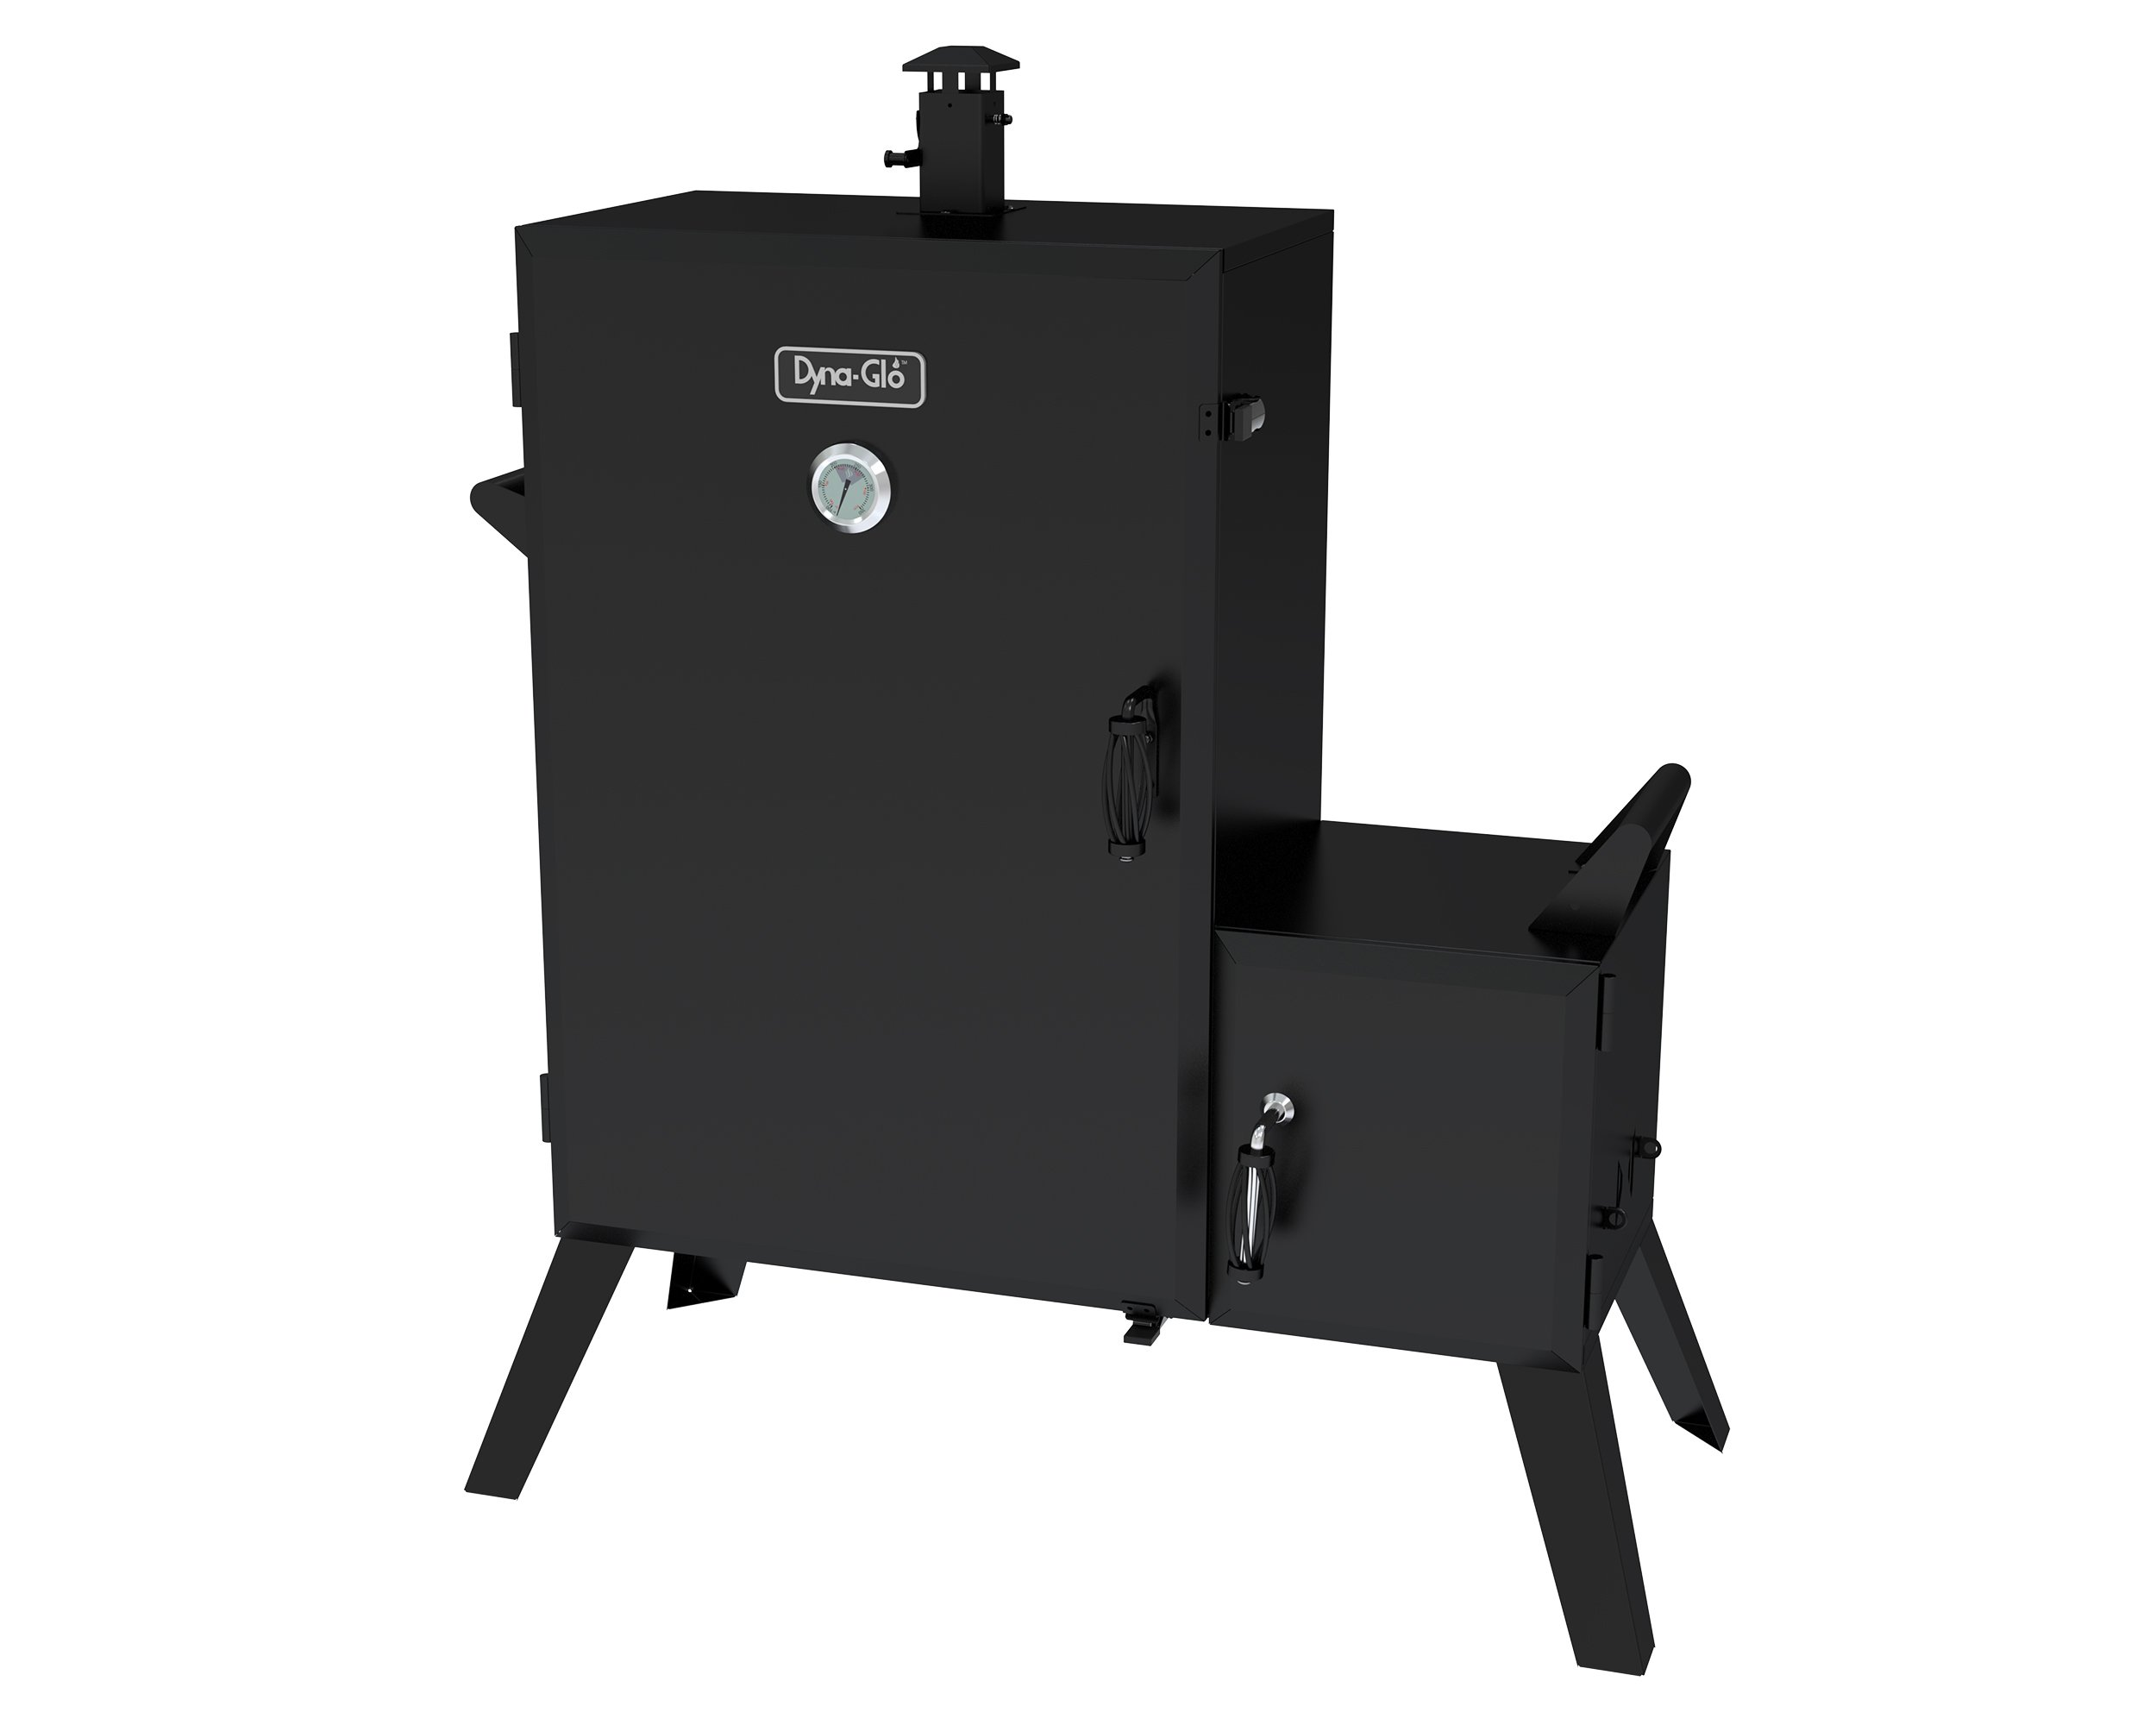 Dyna-Glo DGO1890BDC-D Wide Body Vertical Offset Charcoal Smoker by Dyna-Glo